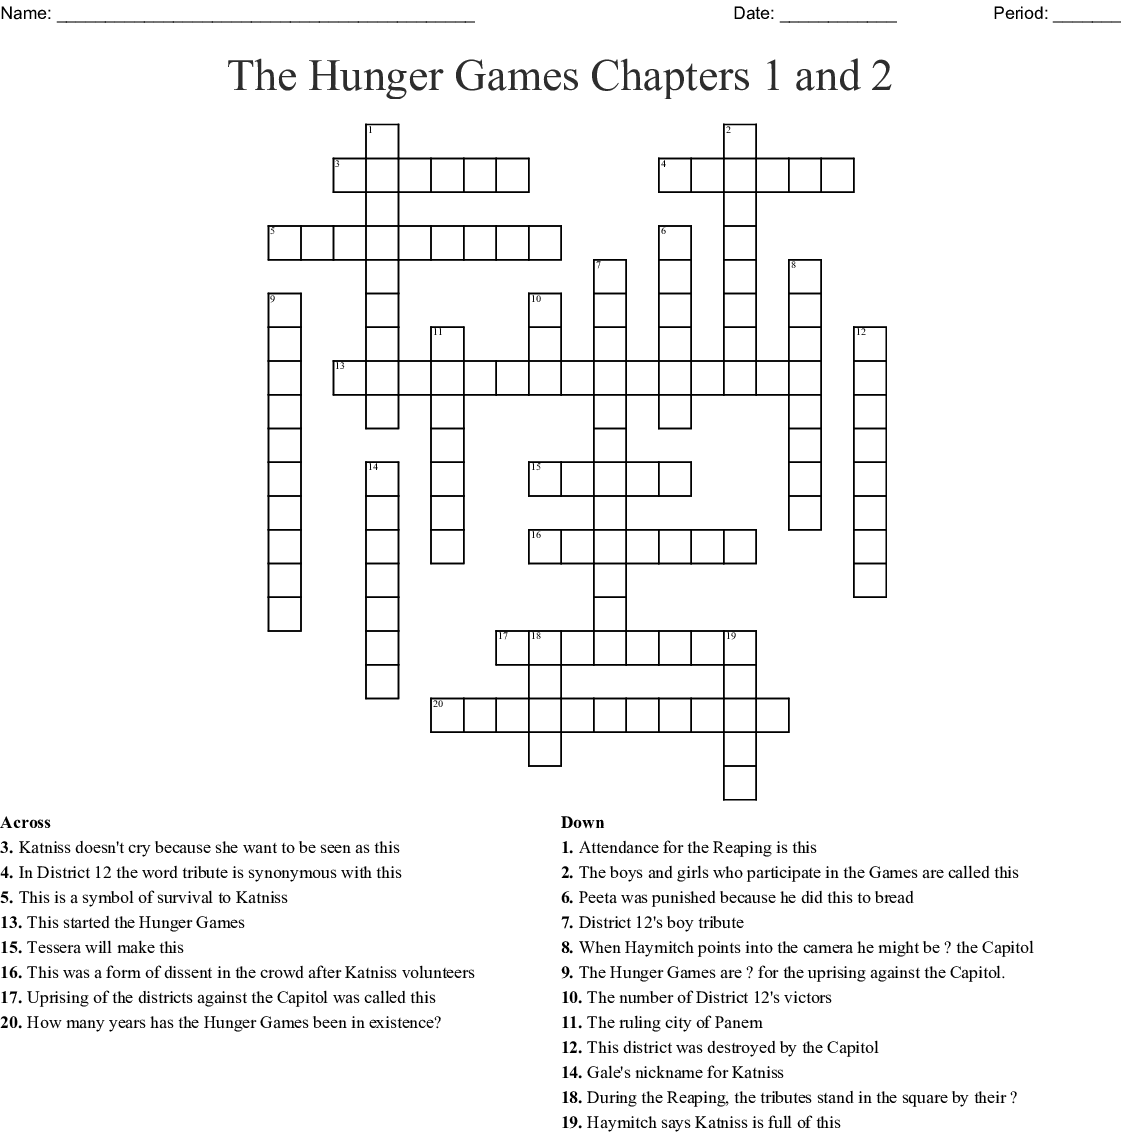 The Hunger Games Chapters 1 And 2 Crossword Wordmint